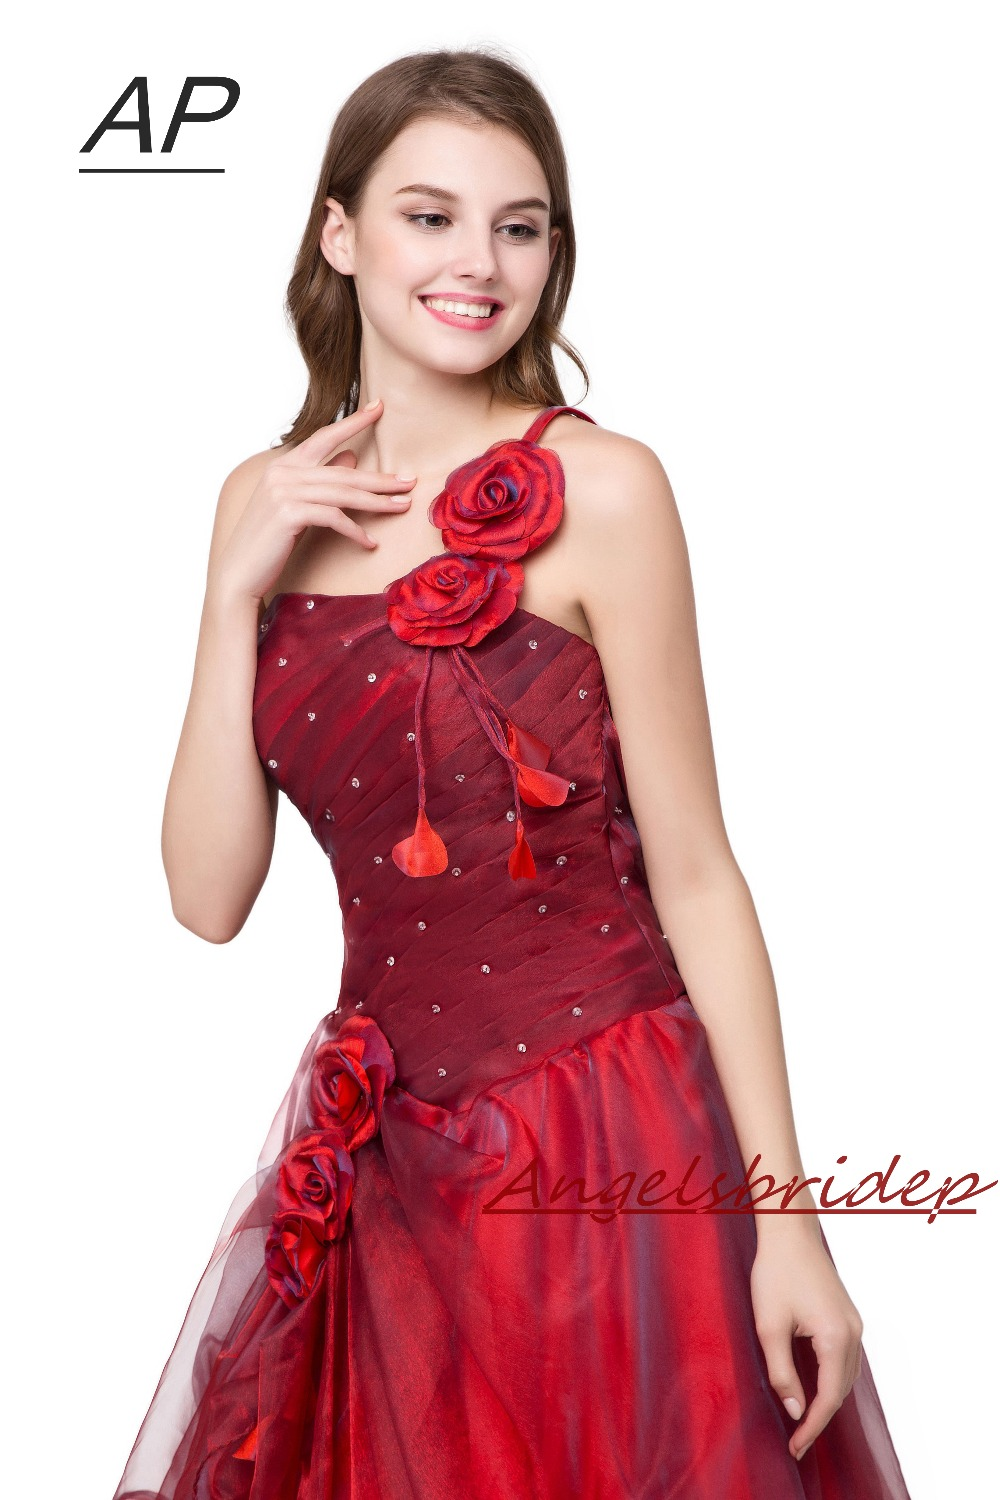 Image 5 - ANGELSBRIDEP Quinceanera Dress Red Vestidos De 15 Anos Sexy One  Shoulder Masquerade Ball Gowns Formal Party Gowns 2020 Hot Saleball  gown formalmasquerade ball gownsquinceanera dresses red